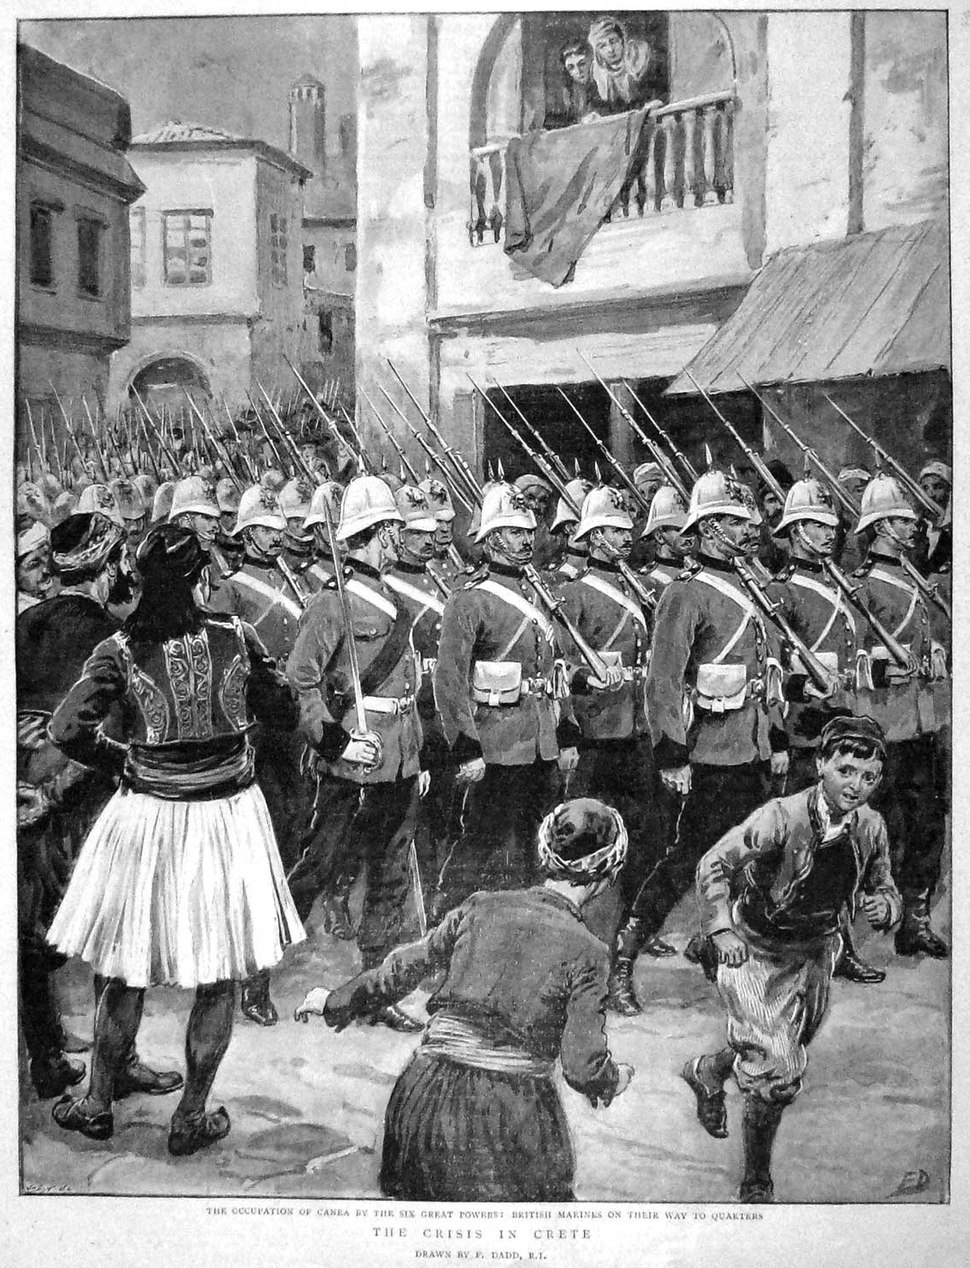 British Marines in Chania, 1897